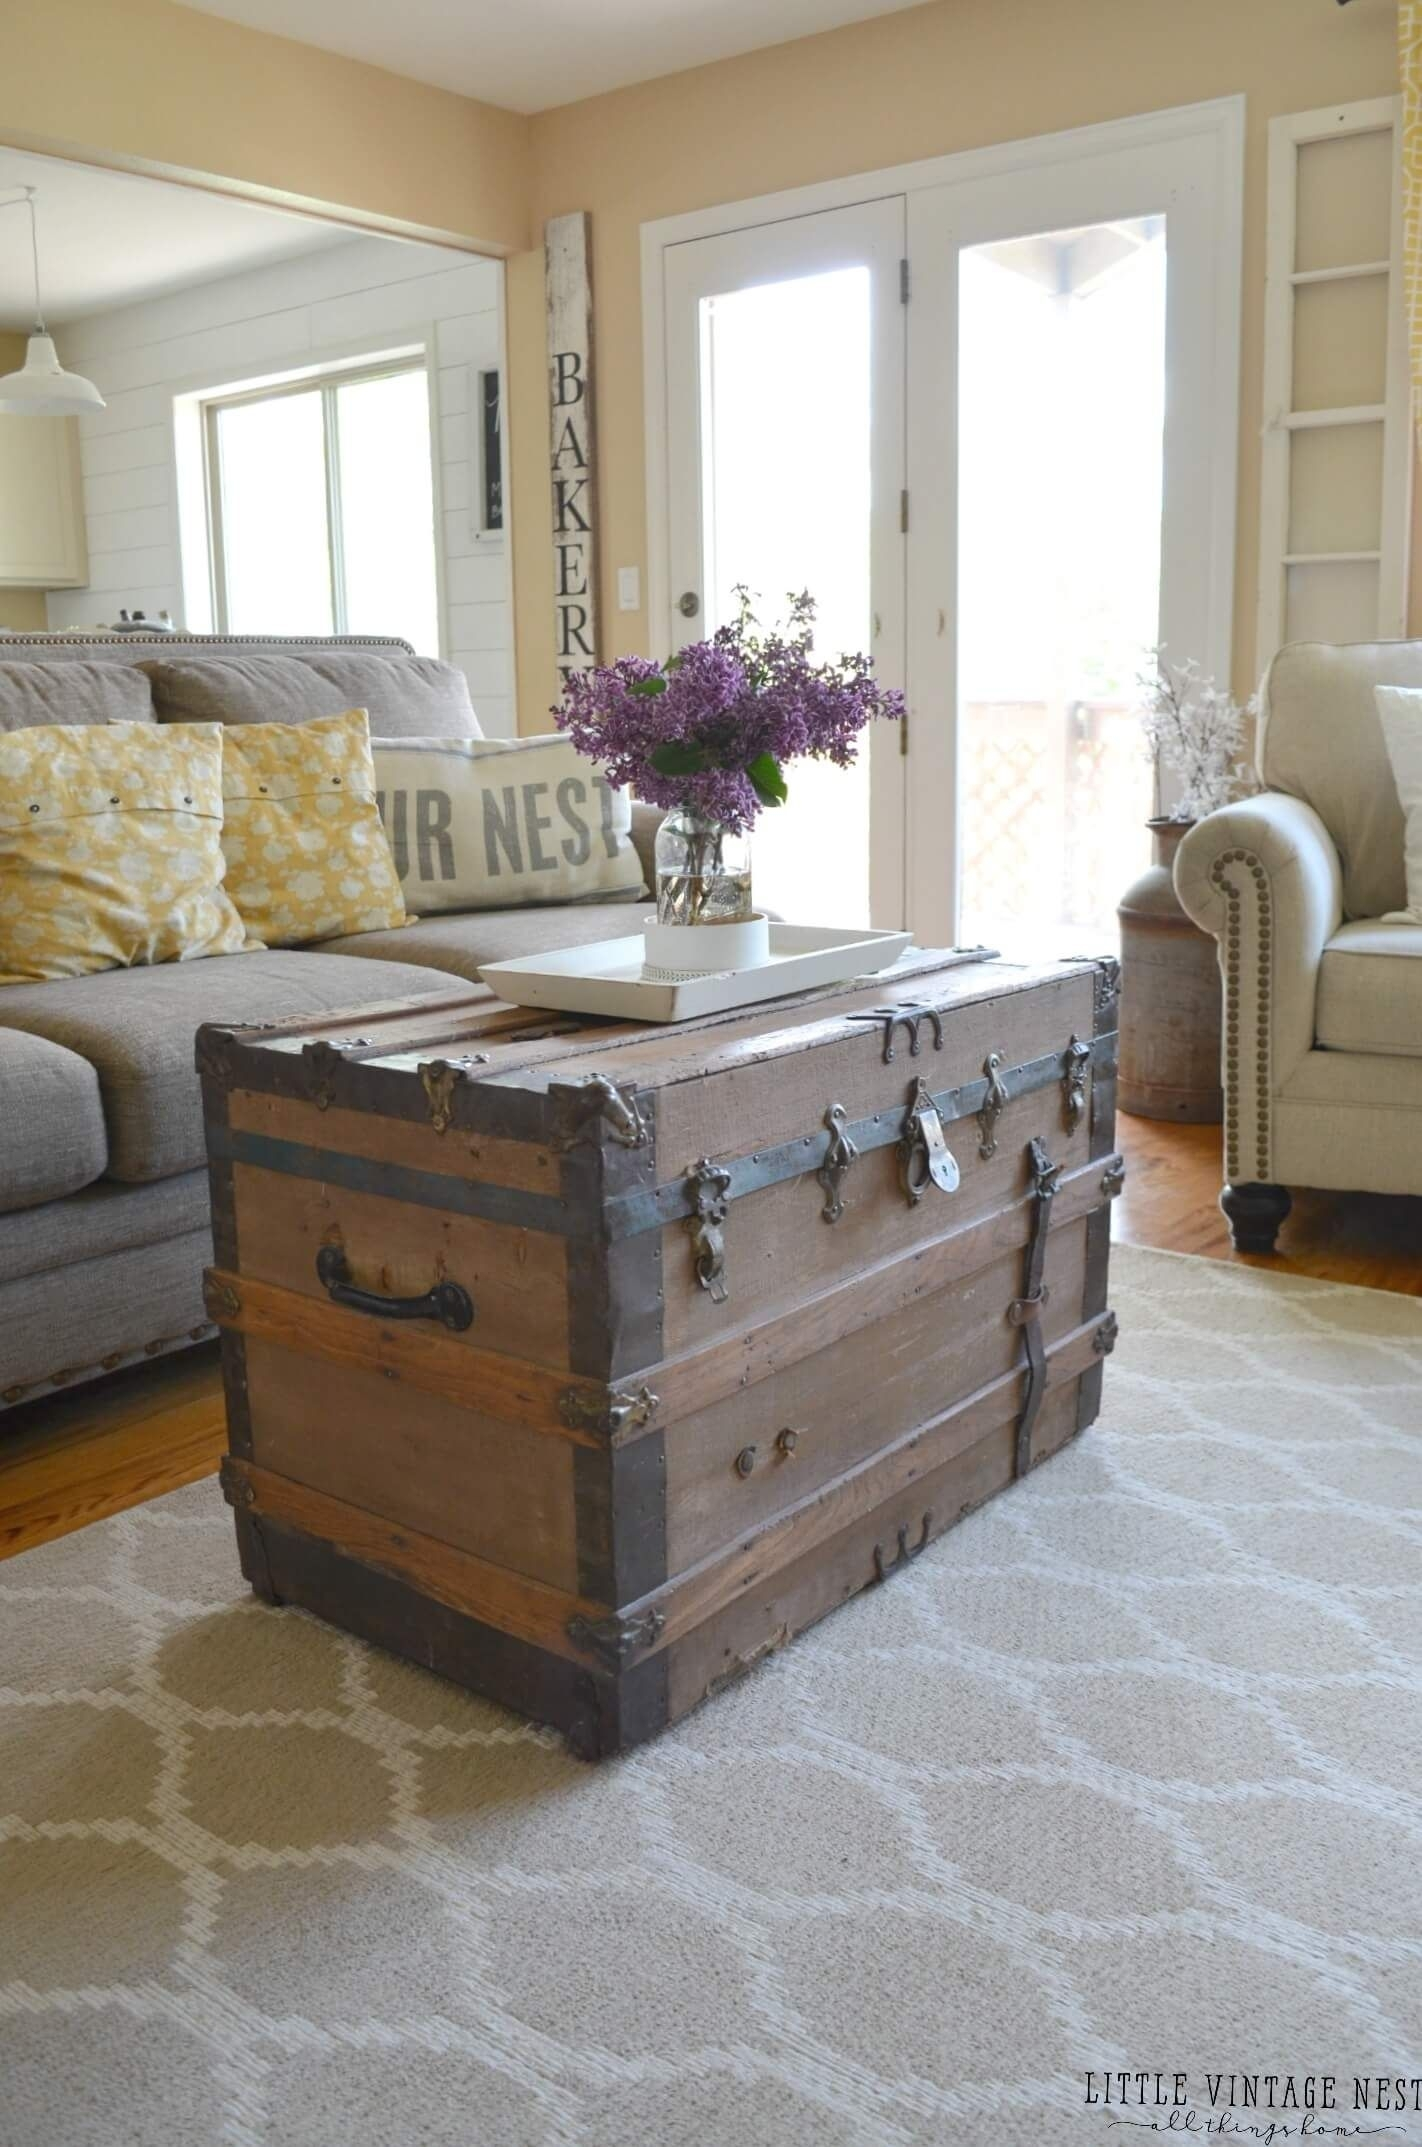 35 Rustic Farmhouse Living Room Design And Decor Ideas For Your Home with Large-Scale Chinese Farmhouse Coffee Tables (Image 4 of 30)